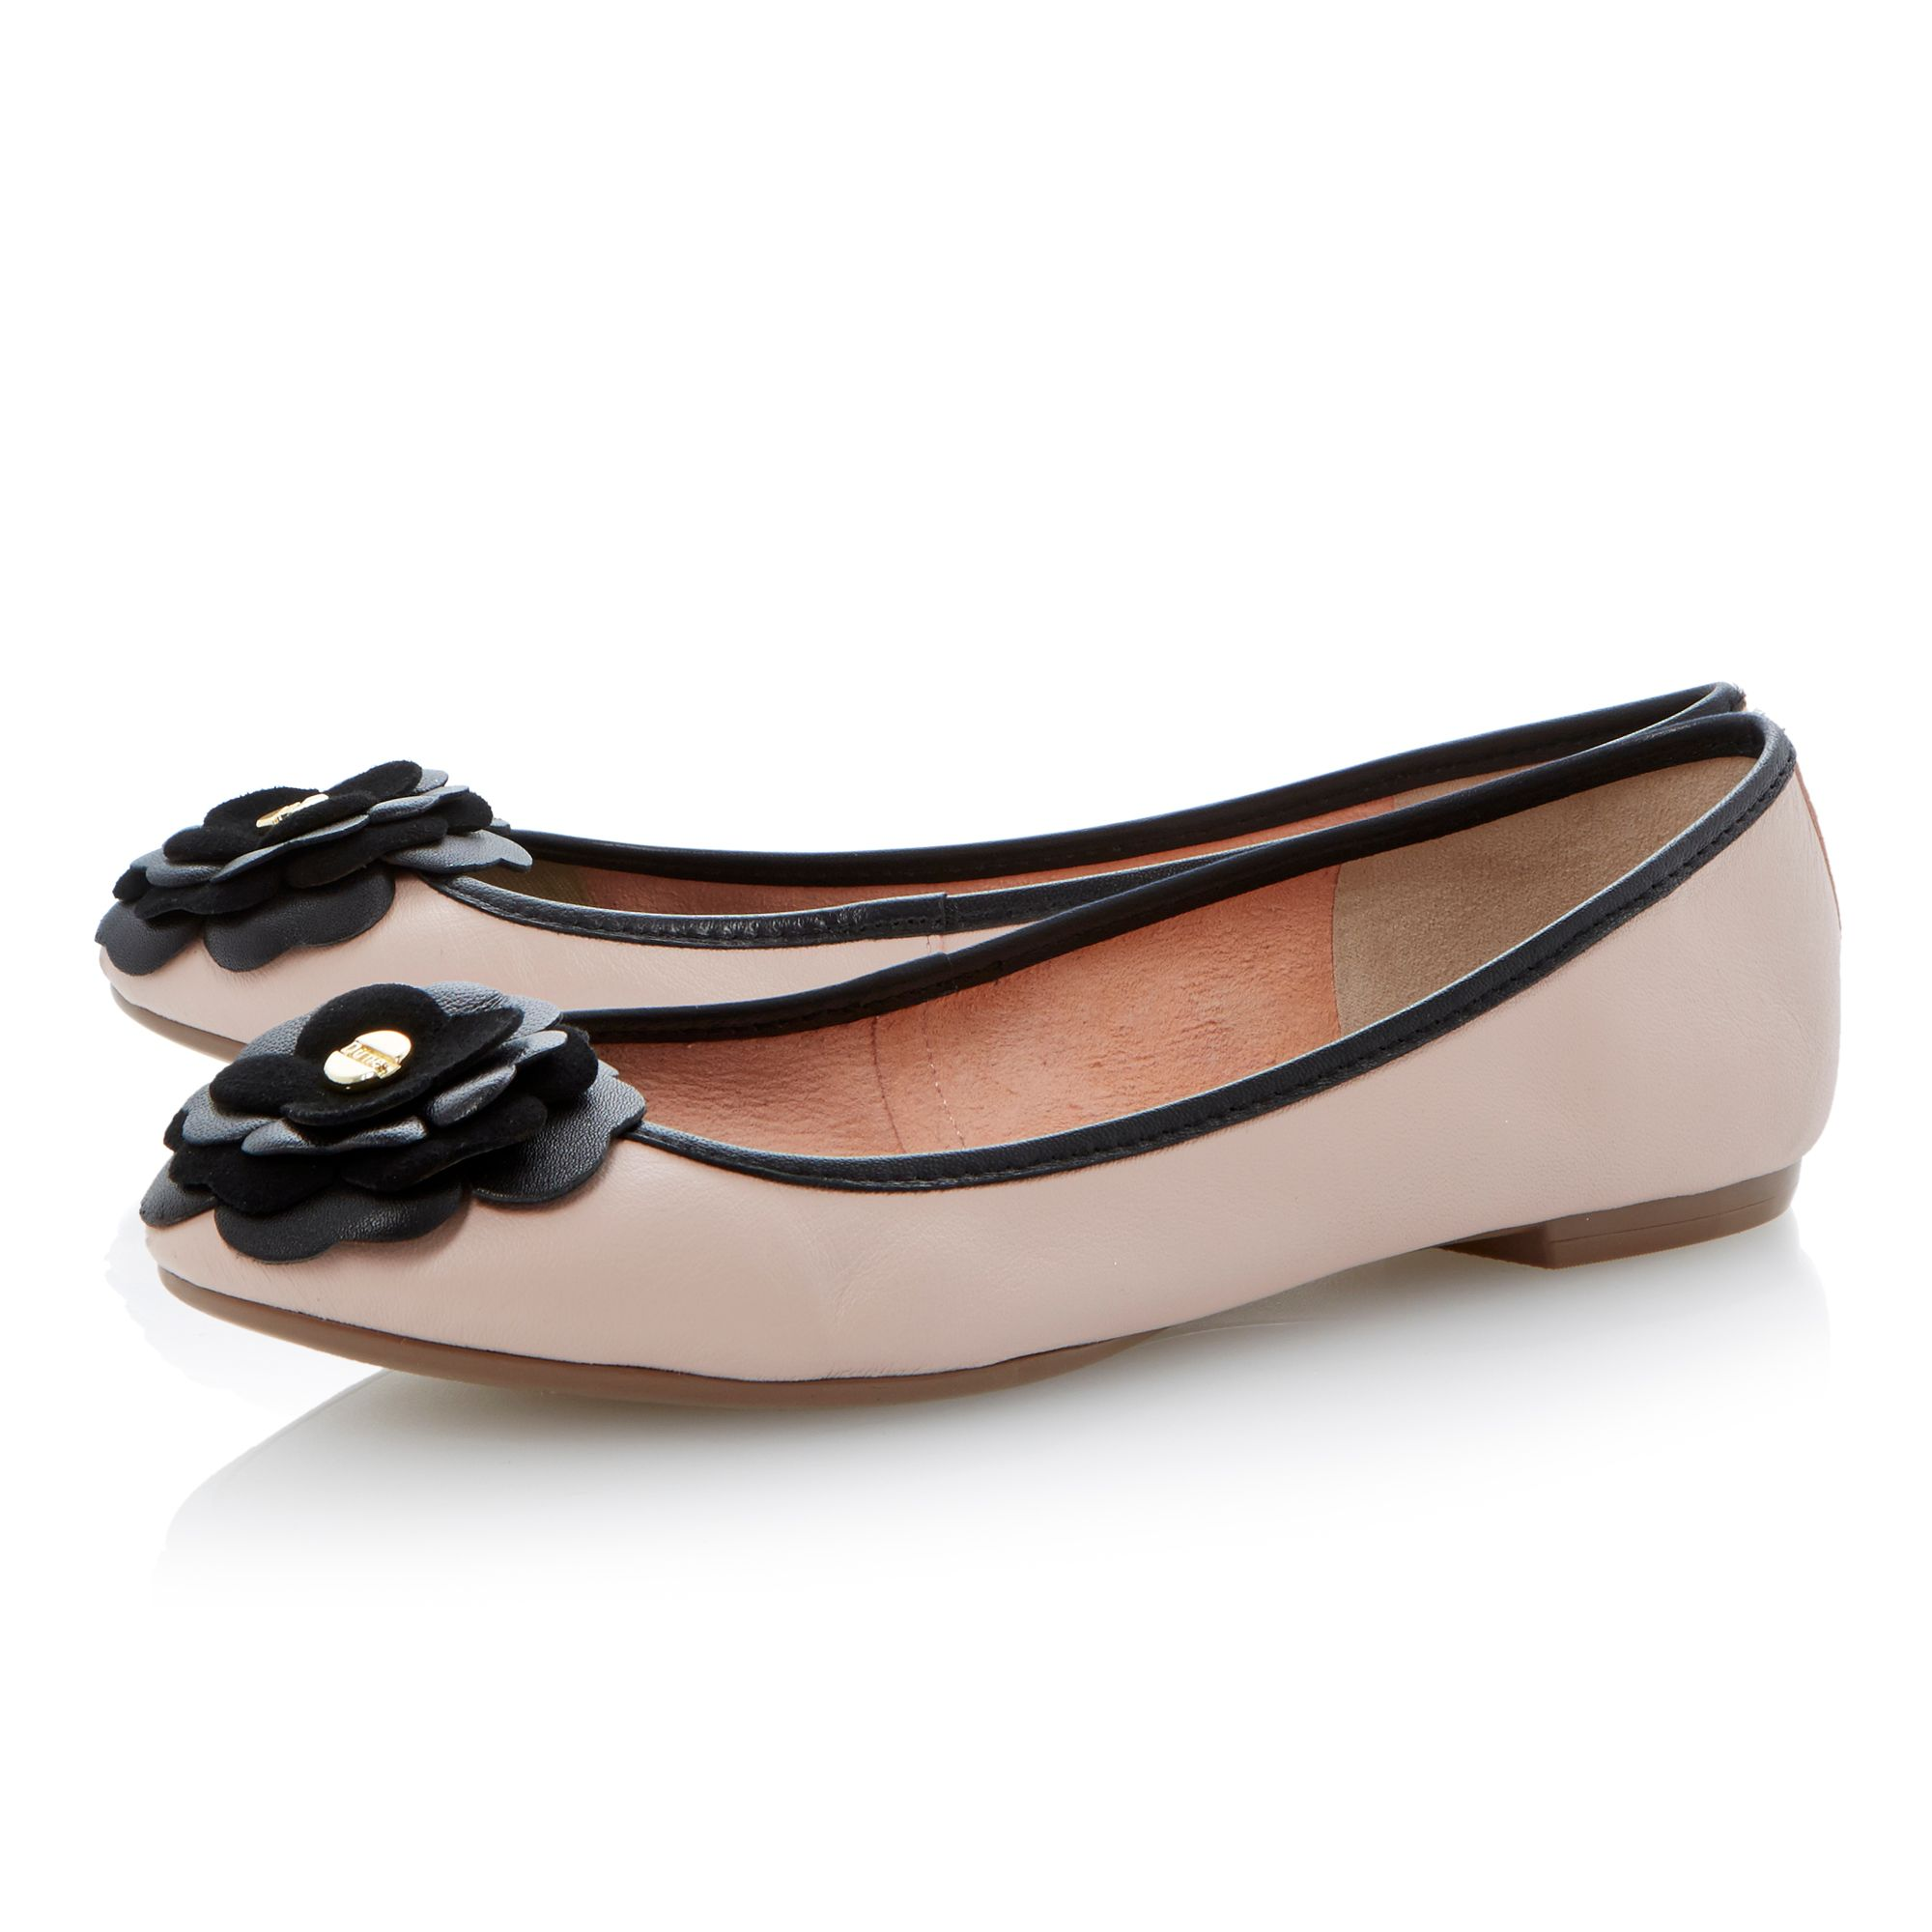 Mariah leather flat almond toe ballerina shoes